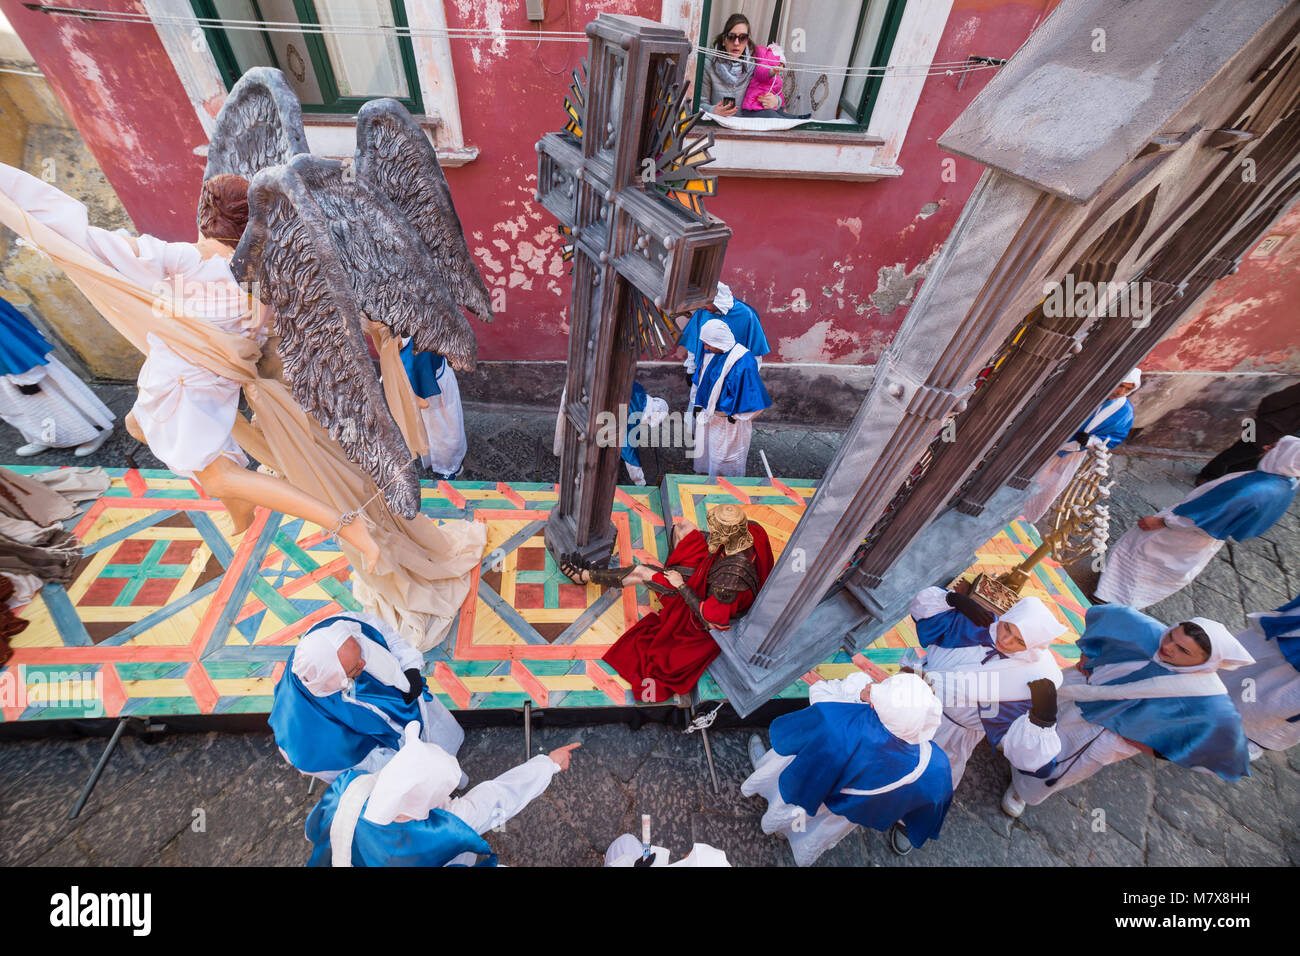 PROCIDA, ITALY - MARCH 25, 2016 - Procida's Good Friday procession is the most famous Easter's celebration - Stock Image